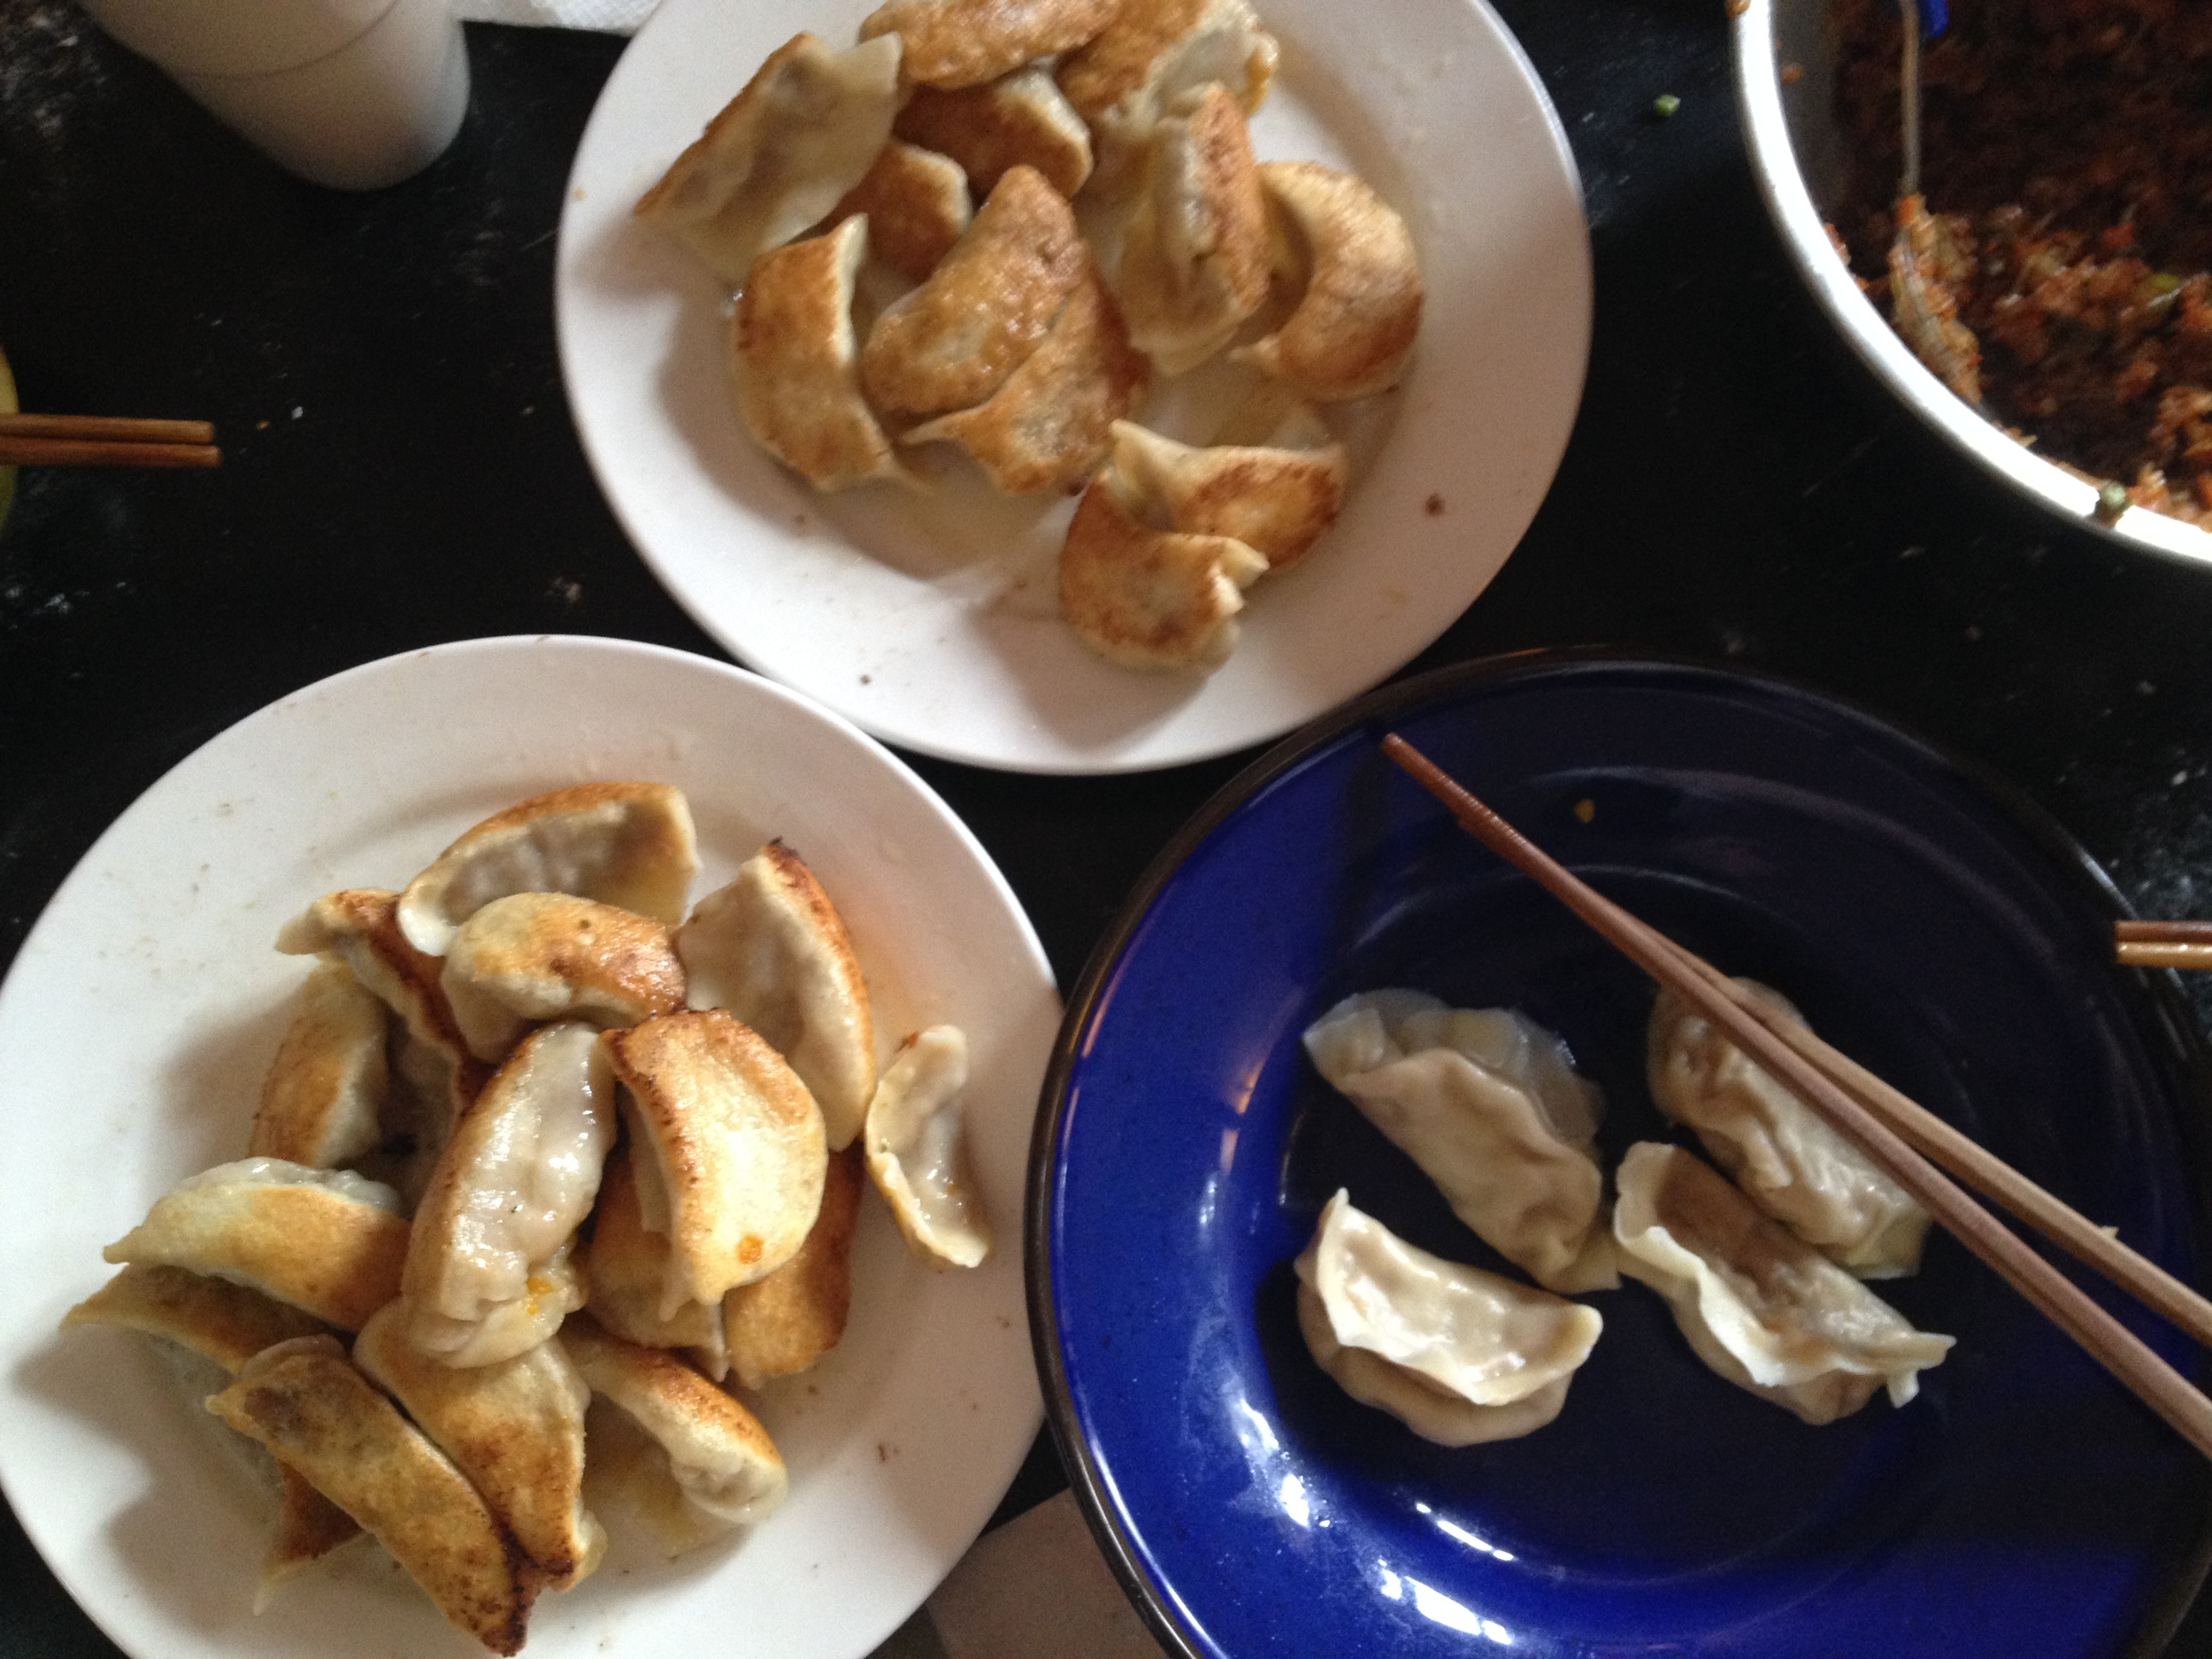 The finished dumplings. White plates are fried and steamed dumplings, the boiled ones are on the blue plate.